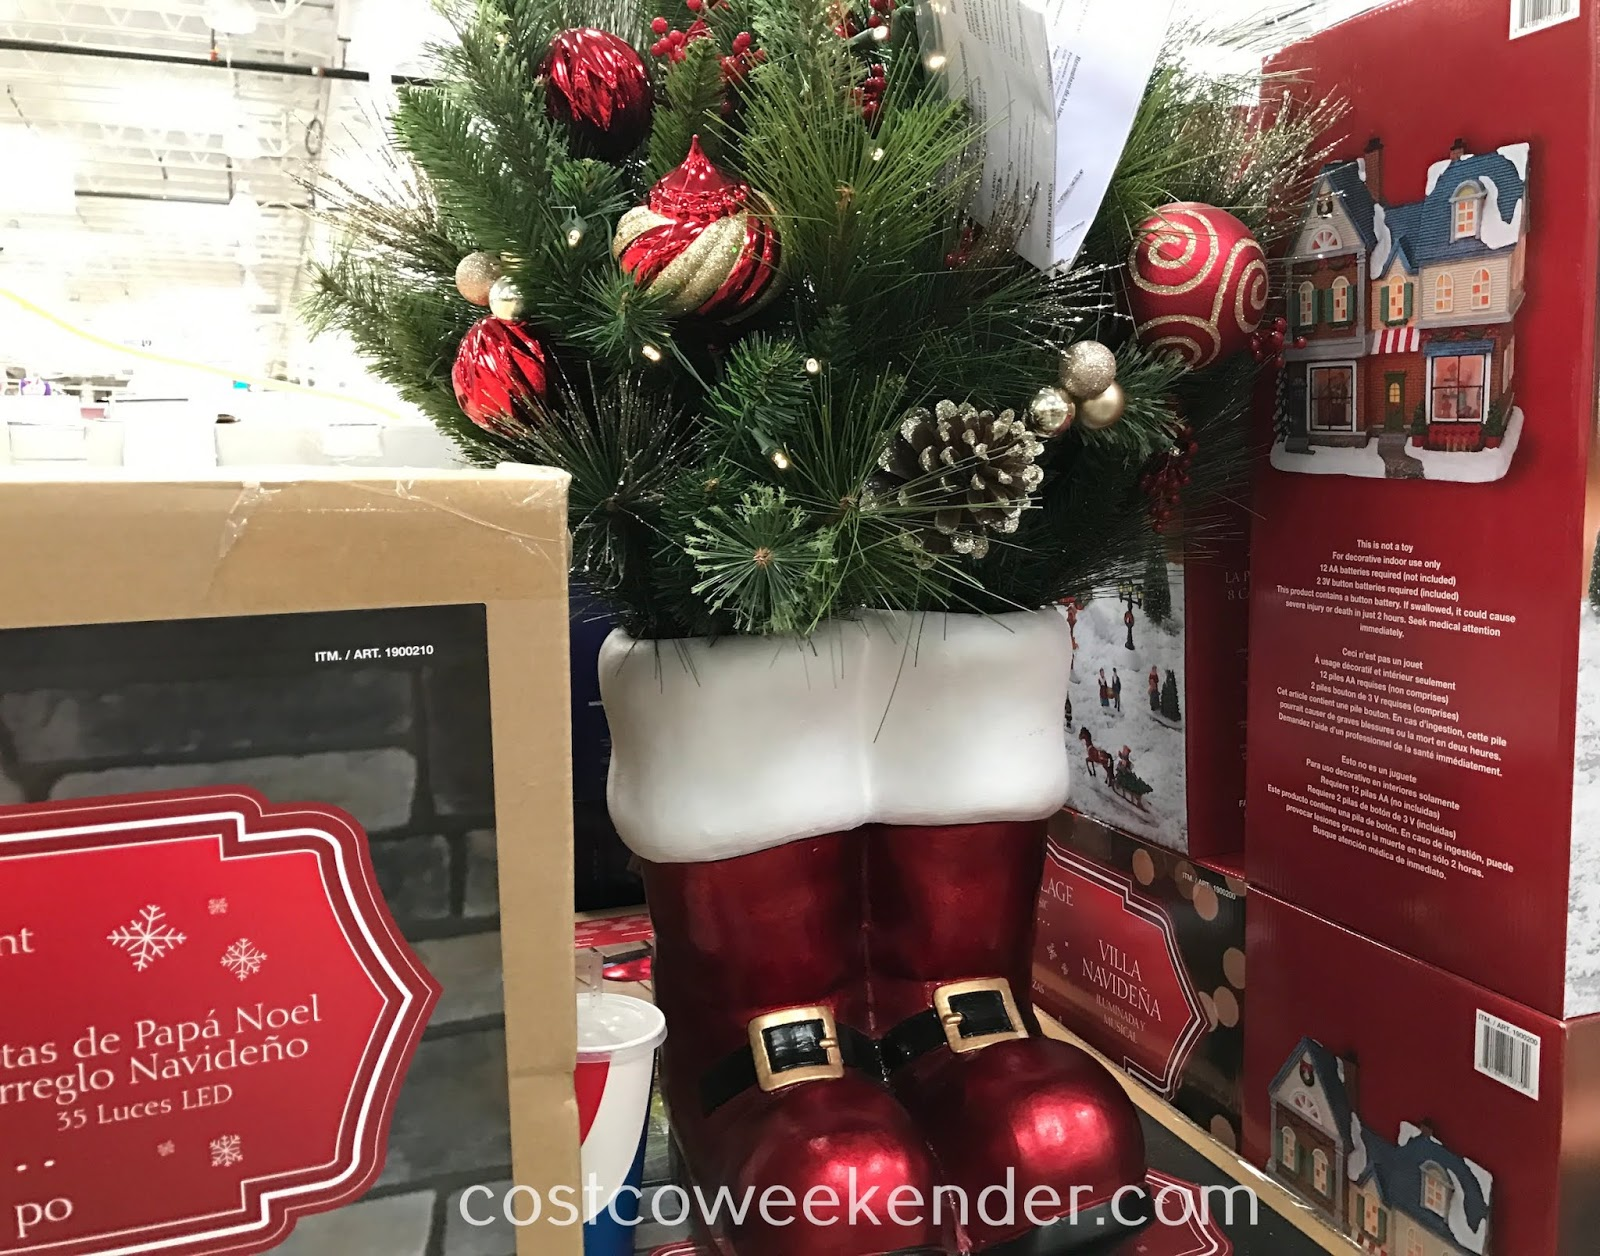 36 Decorated Santa Boot Costco Weekender